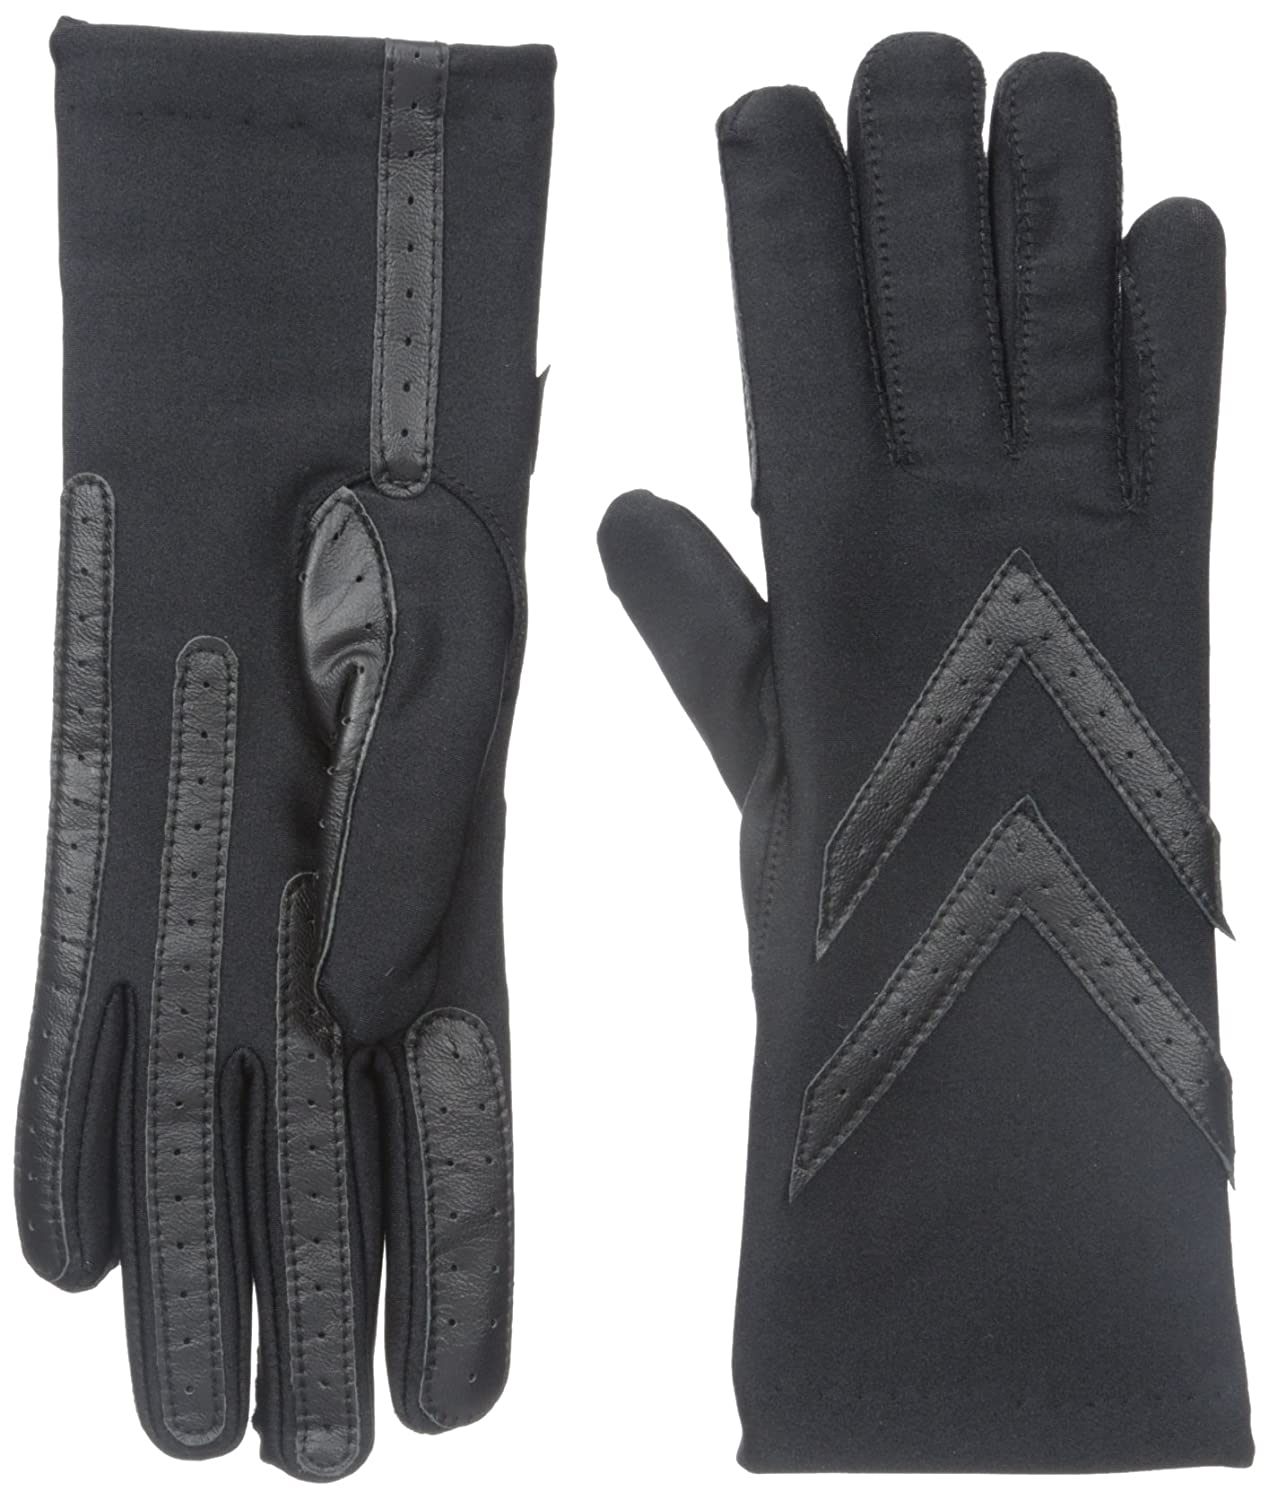 Leather driving gloves vancouver - Isotoner Women S Classic Stretch Warmer Lining Glove Black One Size Amazon Ca Clothing Accessories